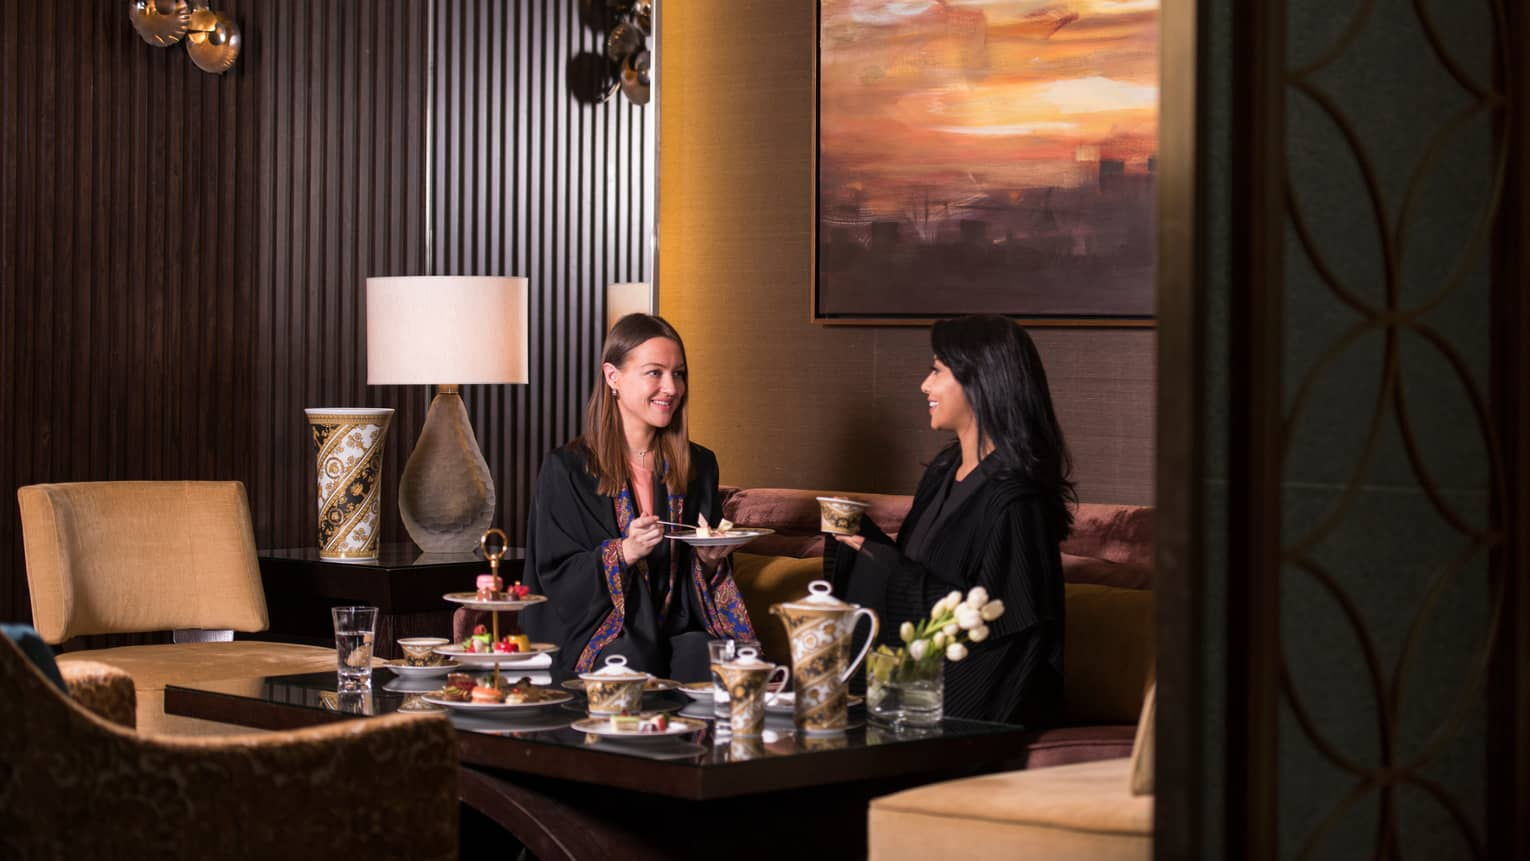 Two women in thin black robes sit on sofa, enjoy high tea at table